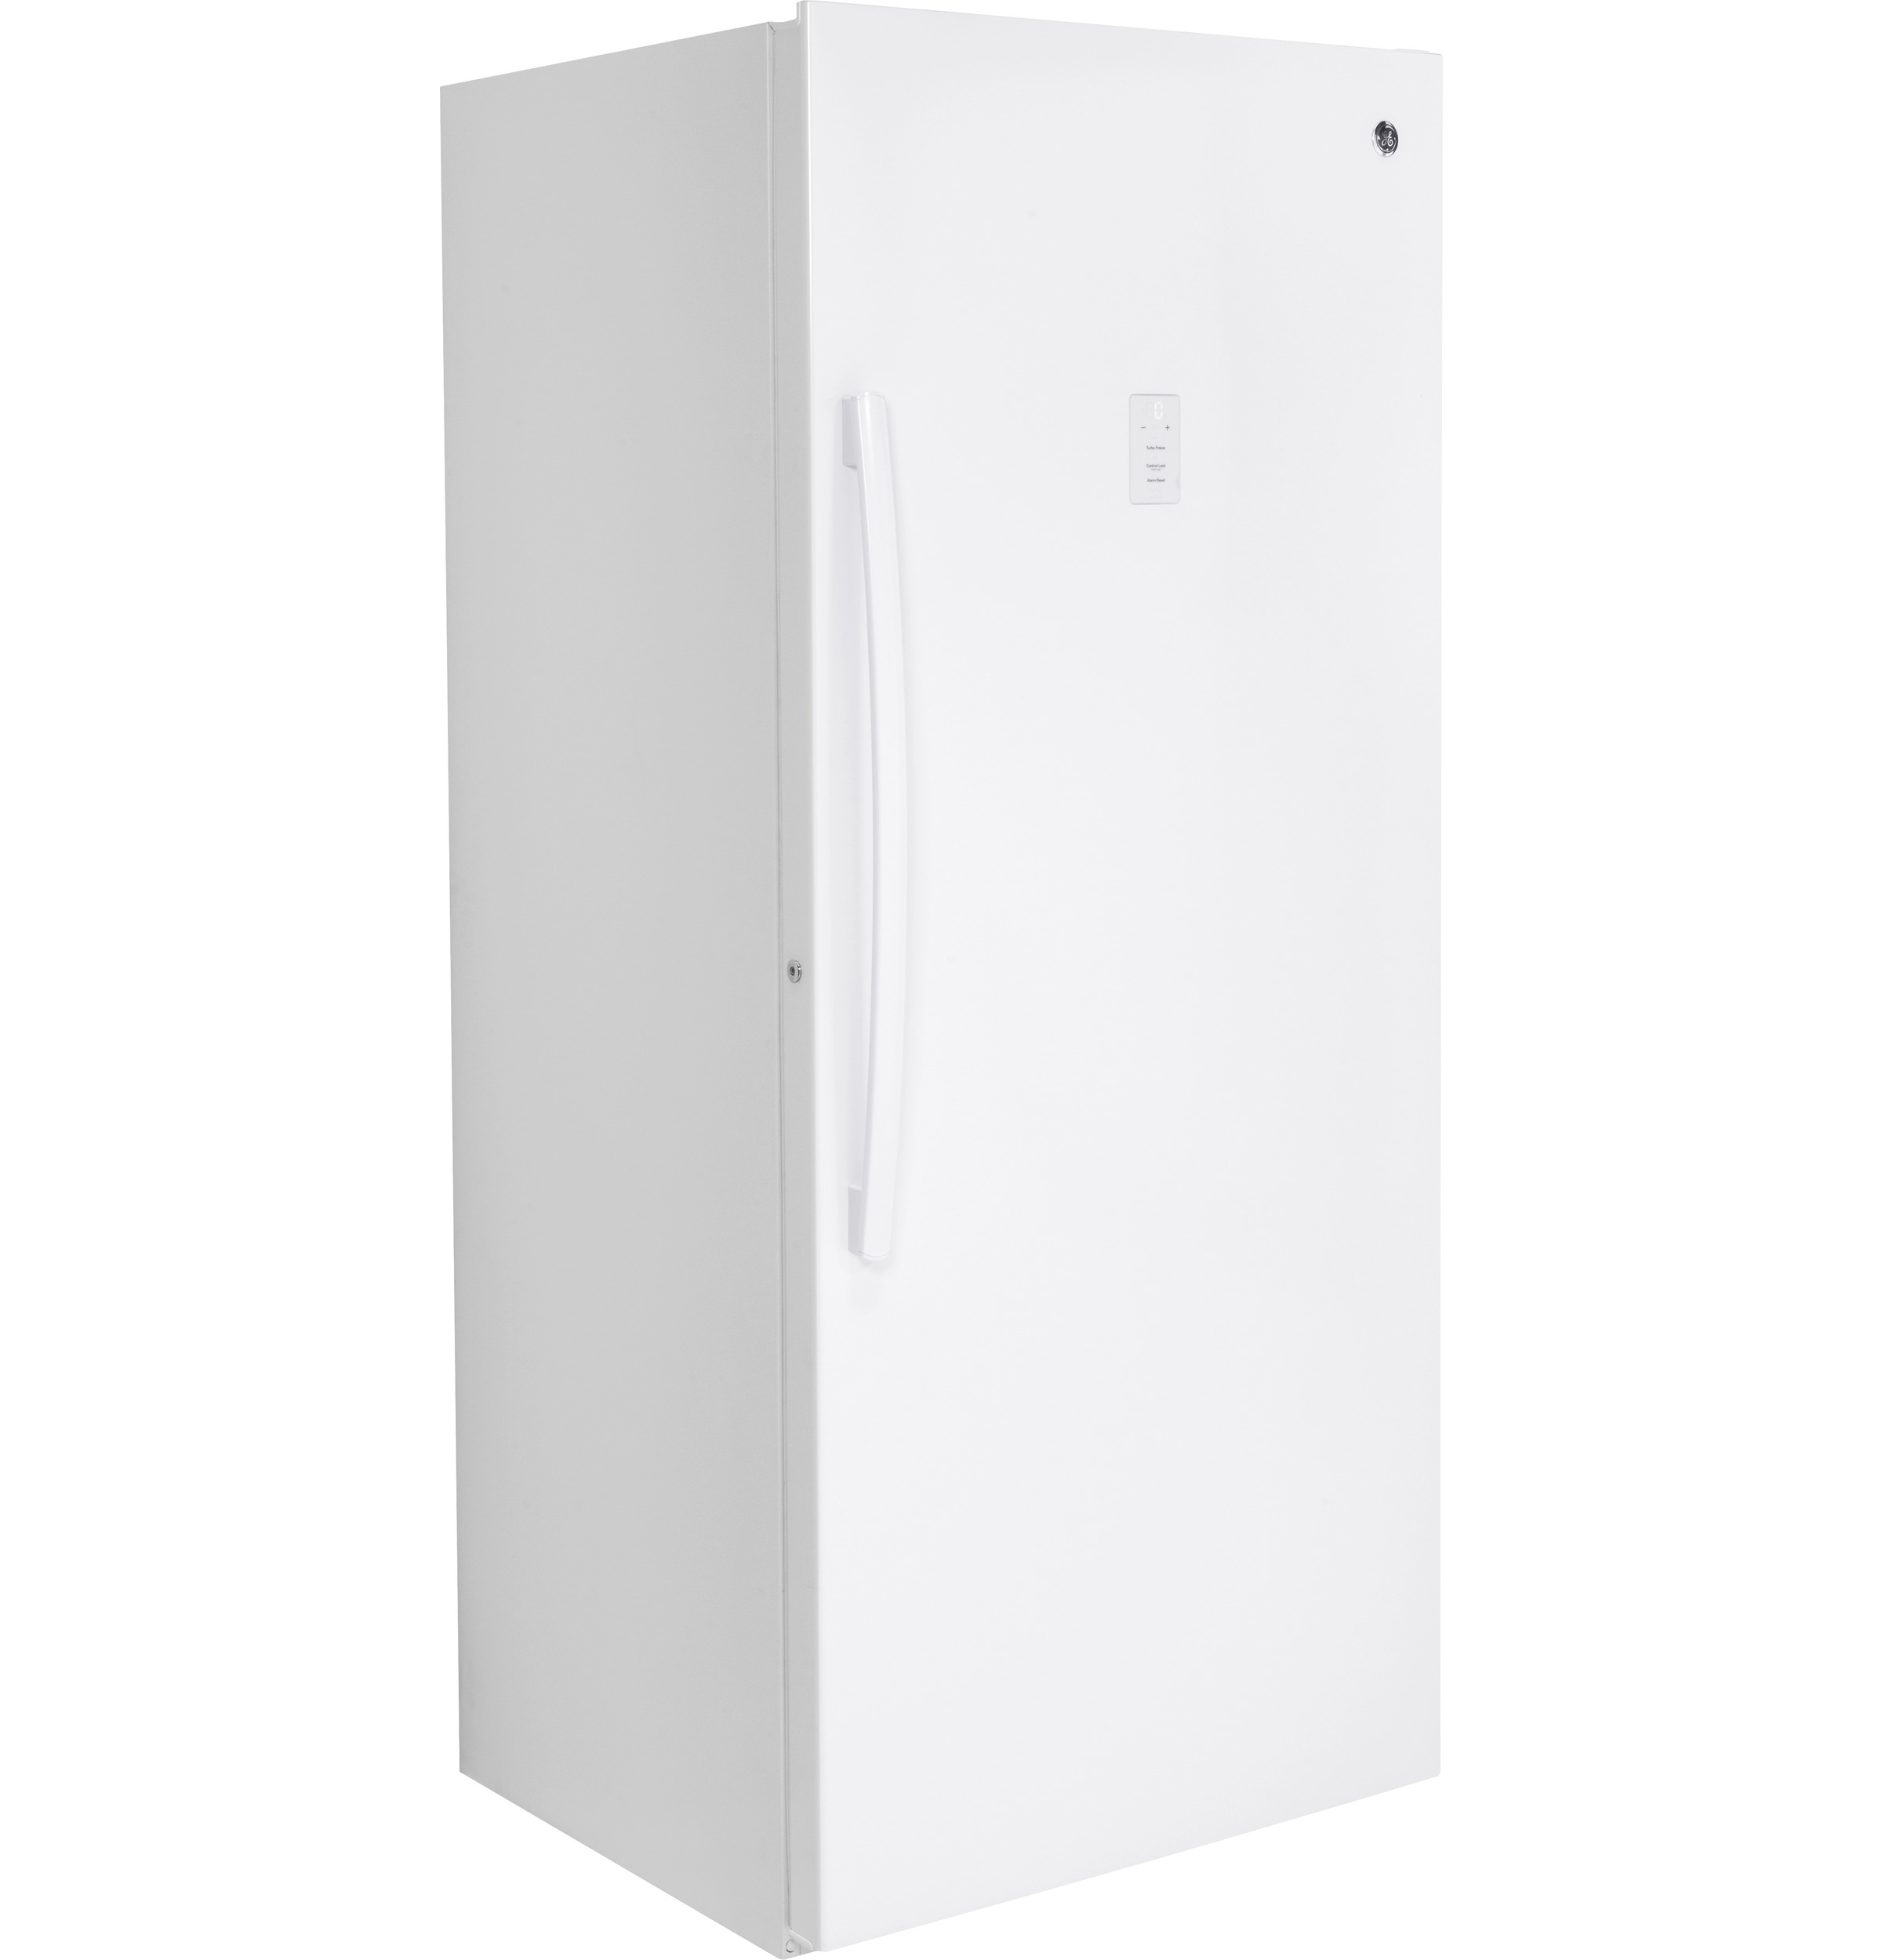 Model: FUF21SMRWW | GE® 21.3 Cu. Ft. Frost-Free Upright Freezer